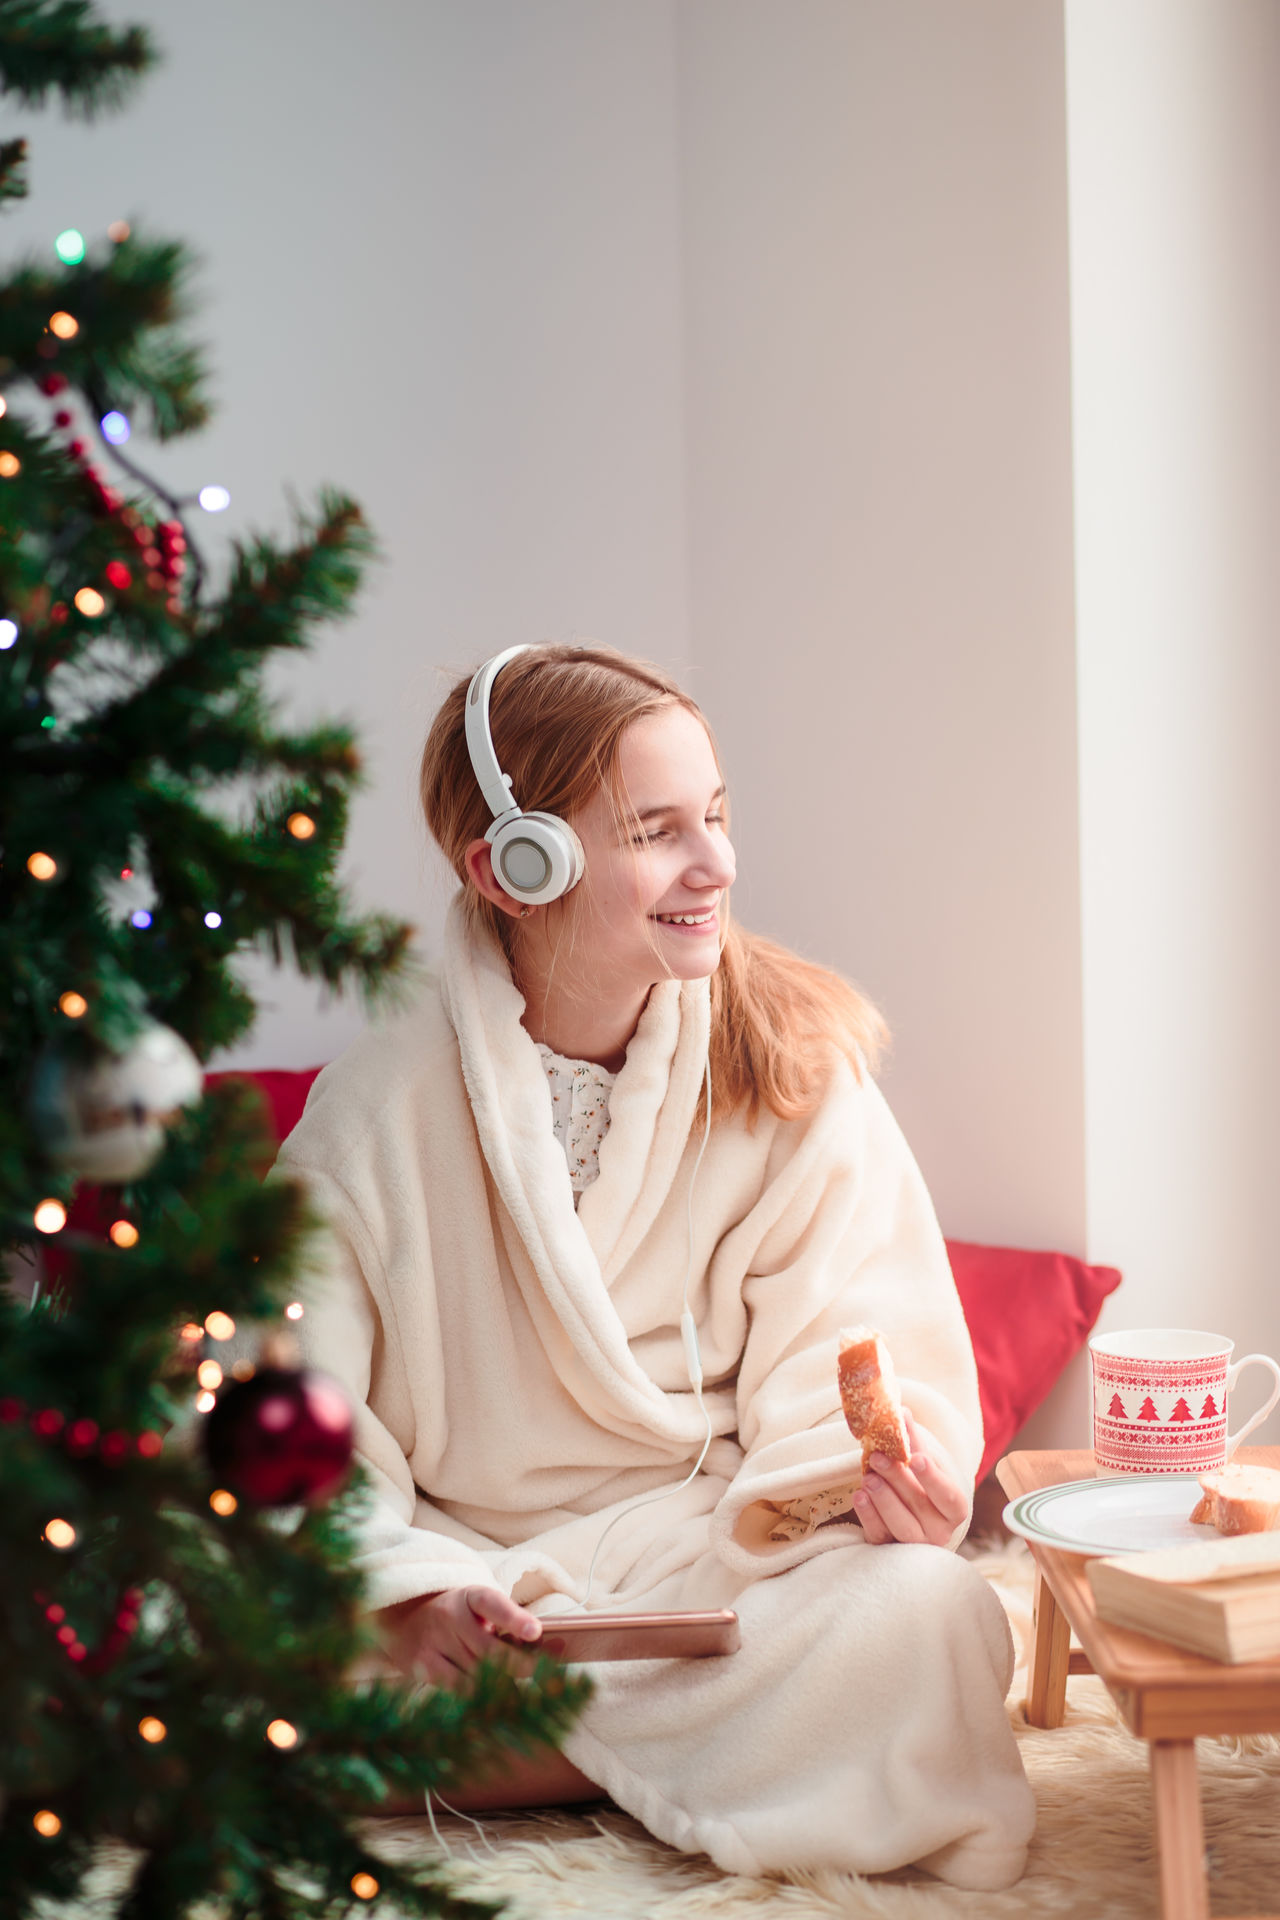 Beautiful stock photos of weihnachten,  12-13 Years,  Adult,  Adults Only,  At Home